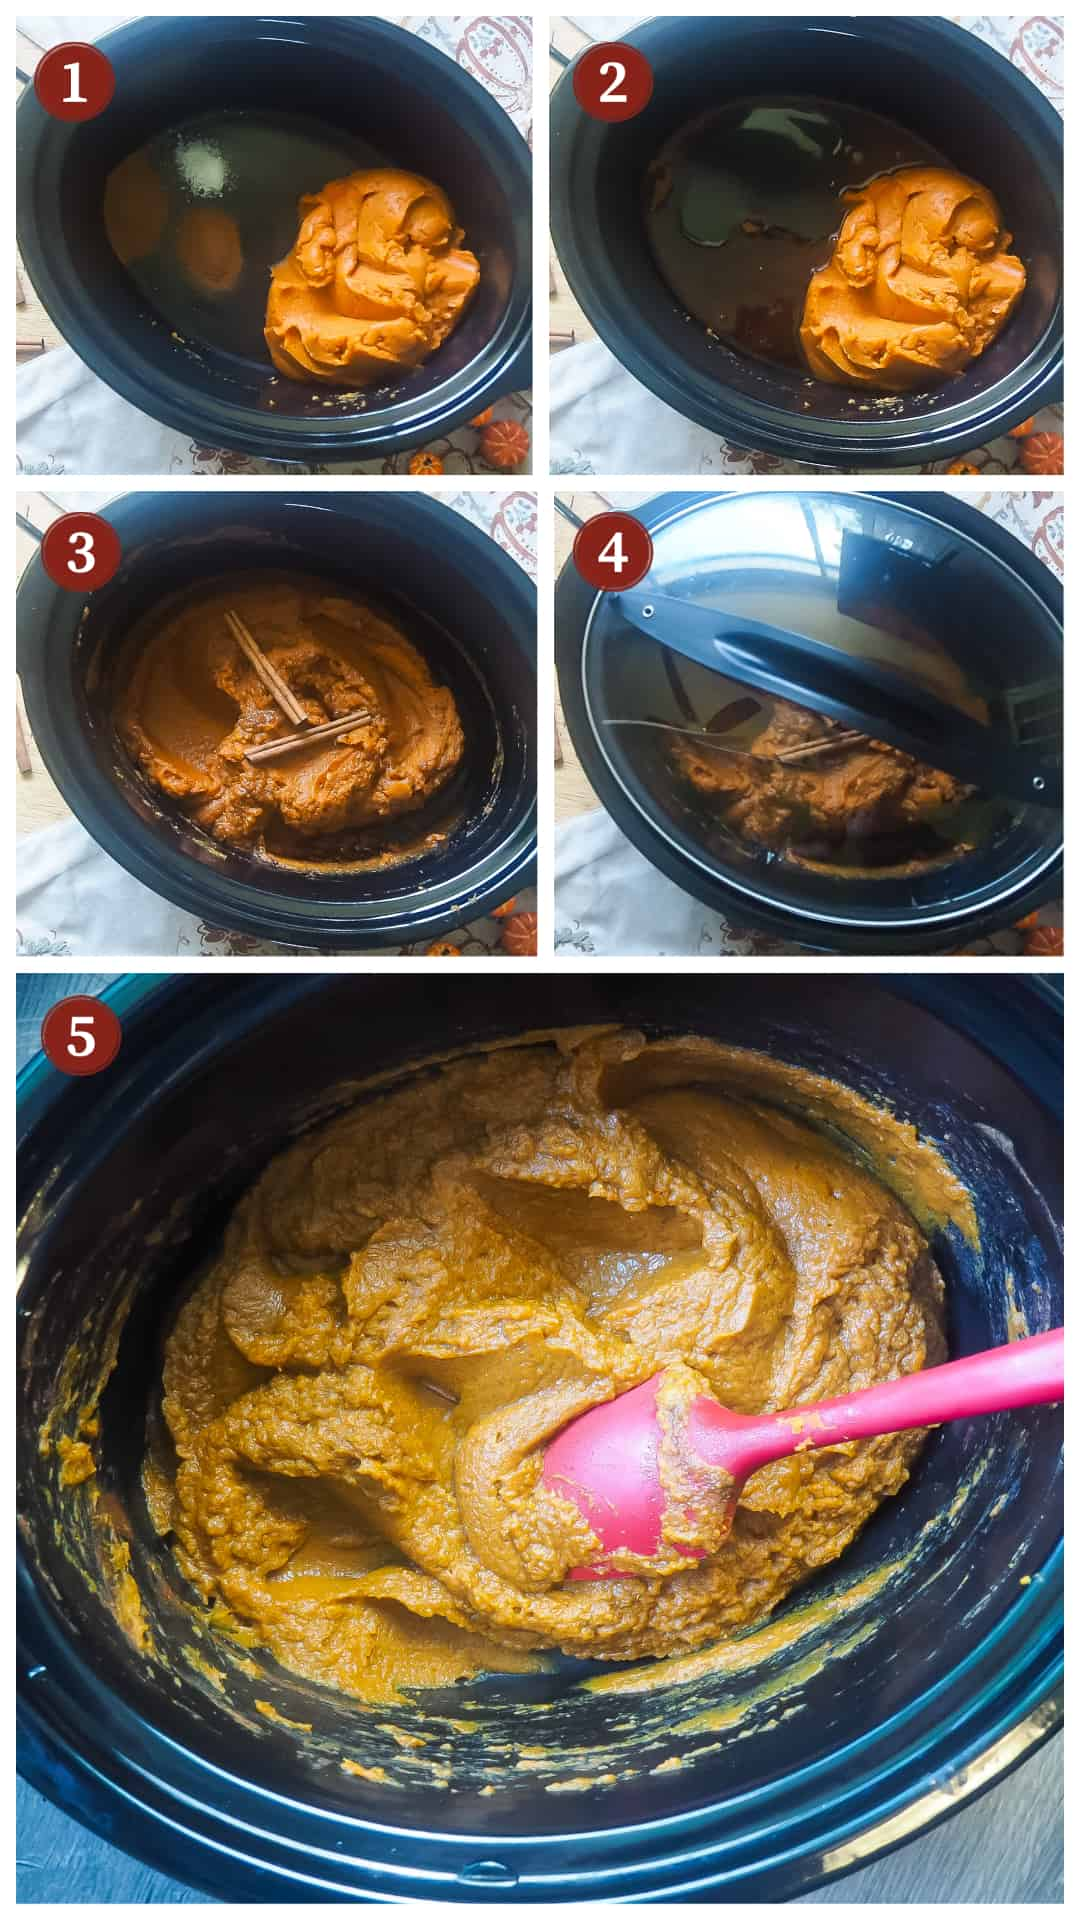 a collage of images showing the process of making pumpkin butter in a slow cooker, steps 1 - 5